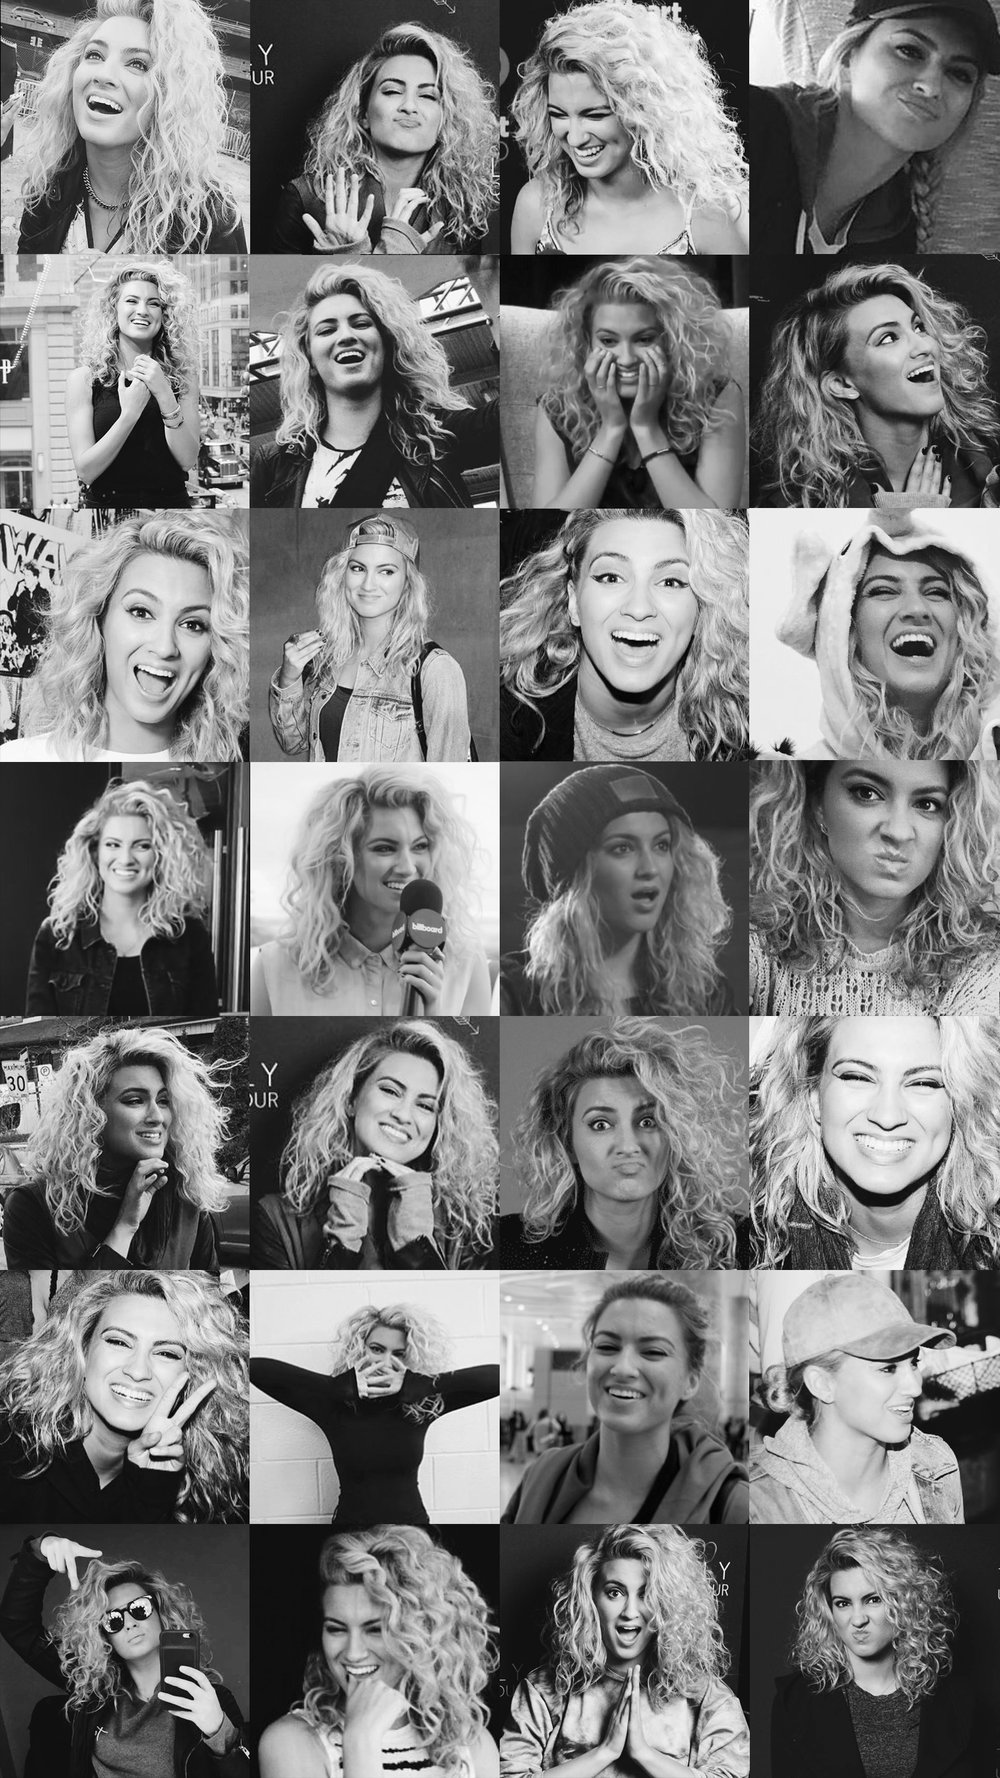 torikelly-lockscreen26.jpg